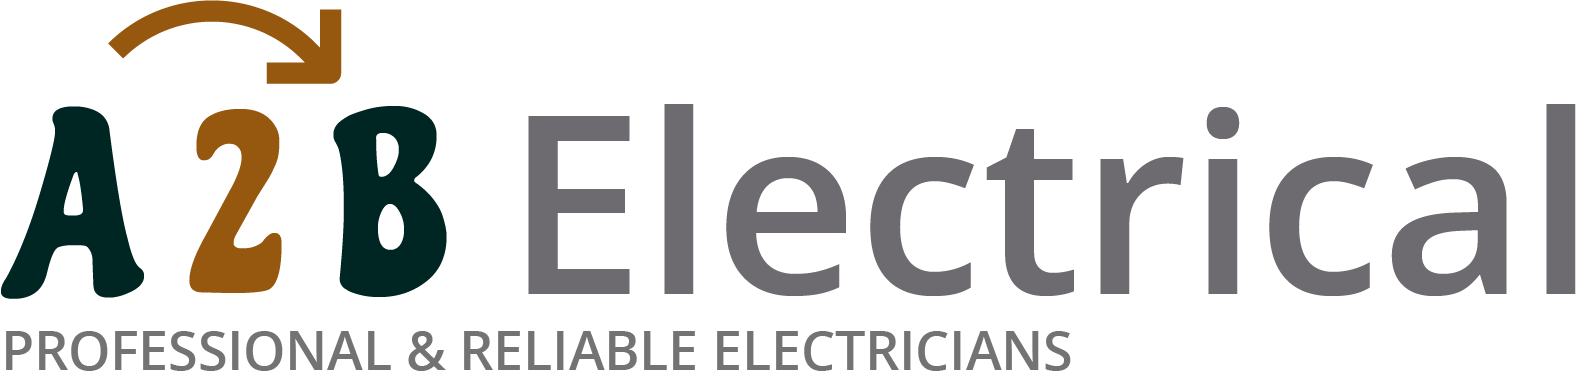 If you have electrical wiring problems in Canning Town, we can provide an electrician to have a look for you.